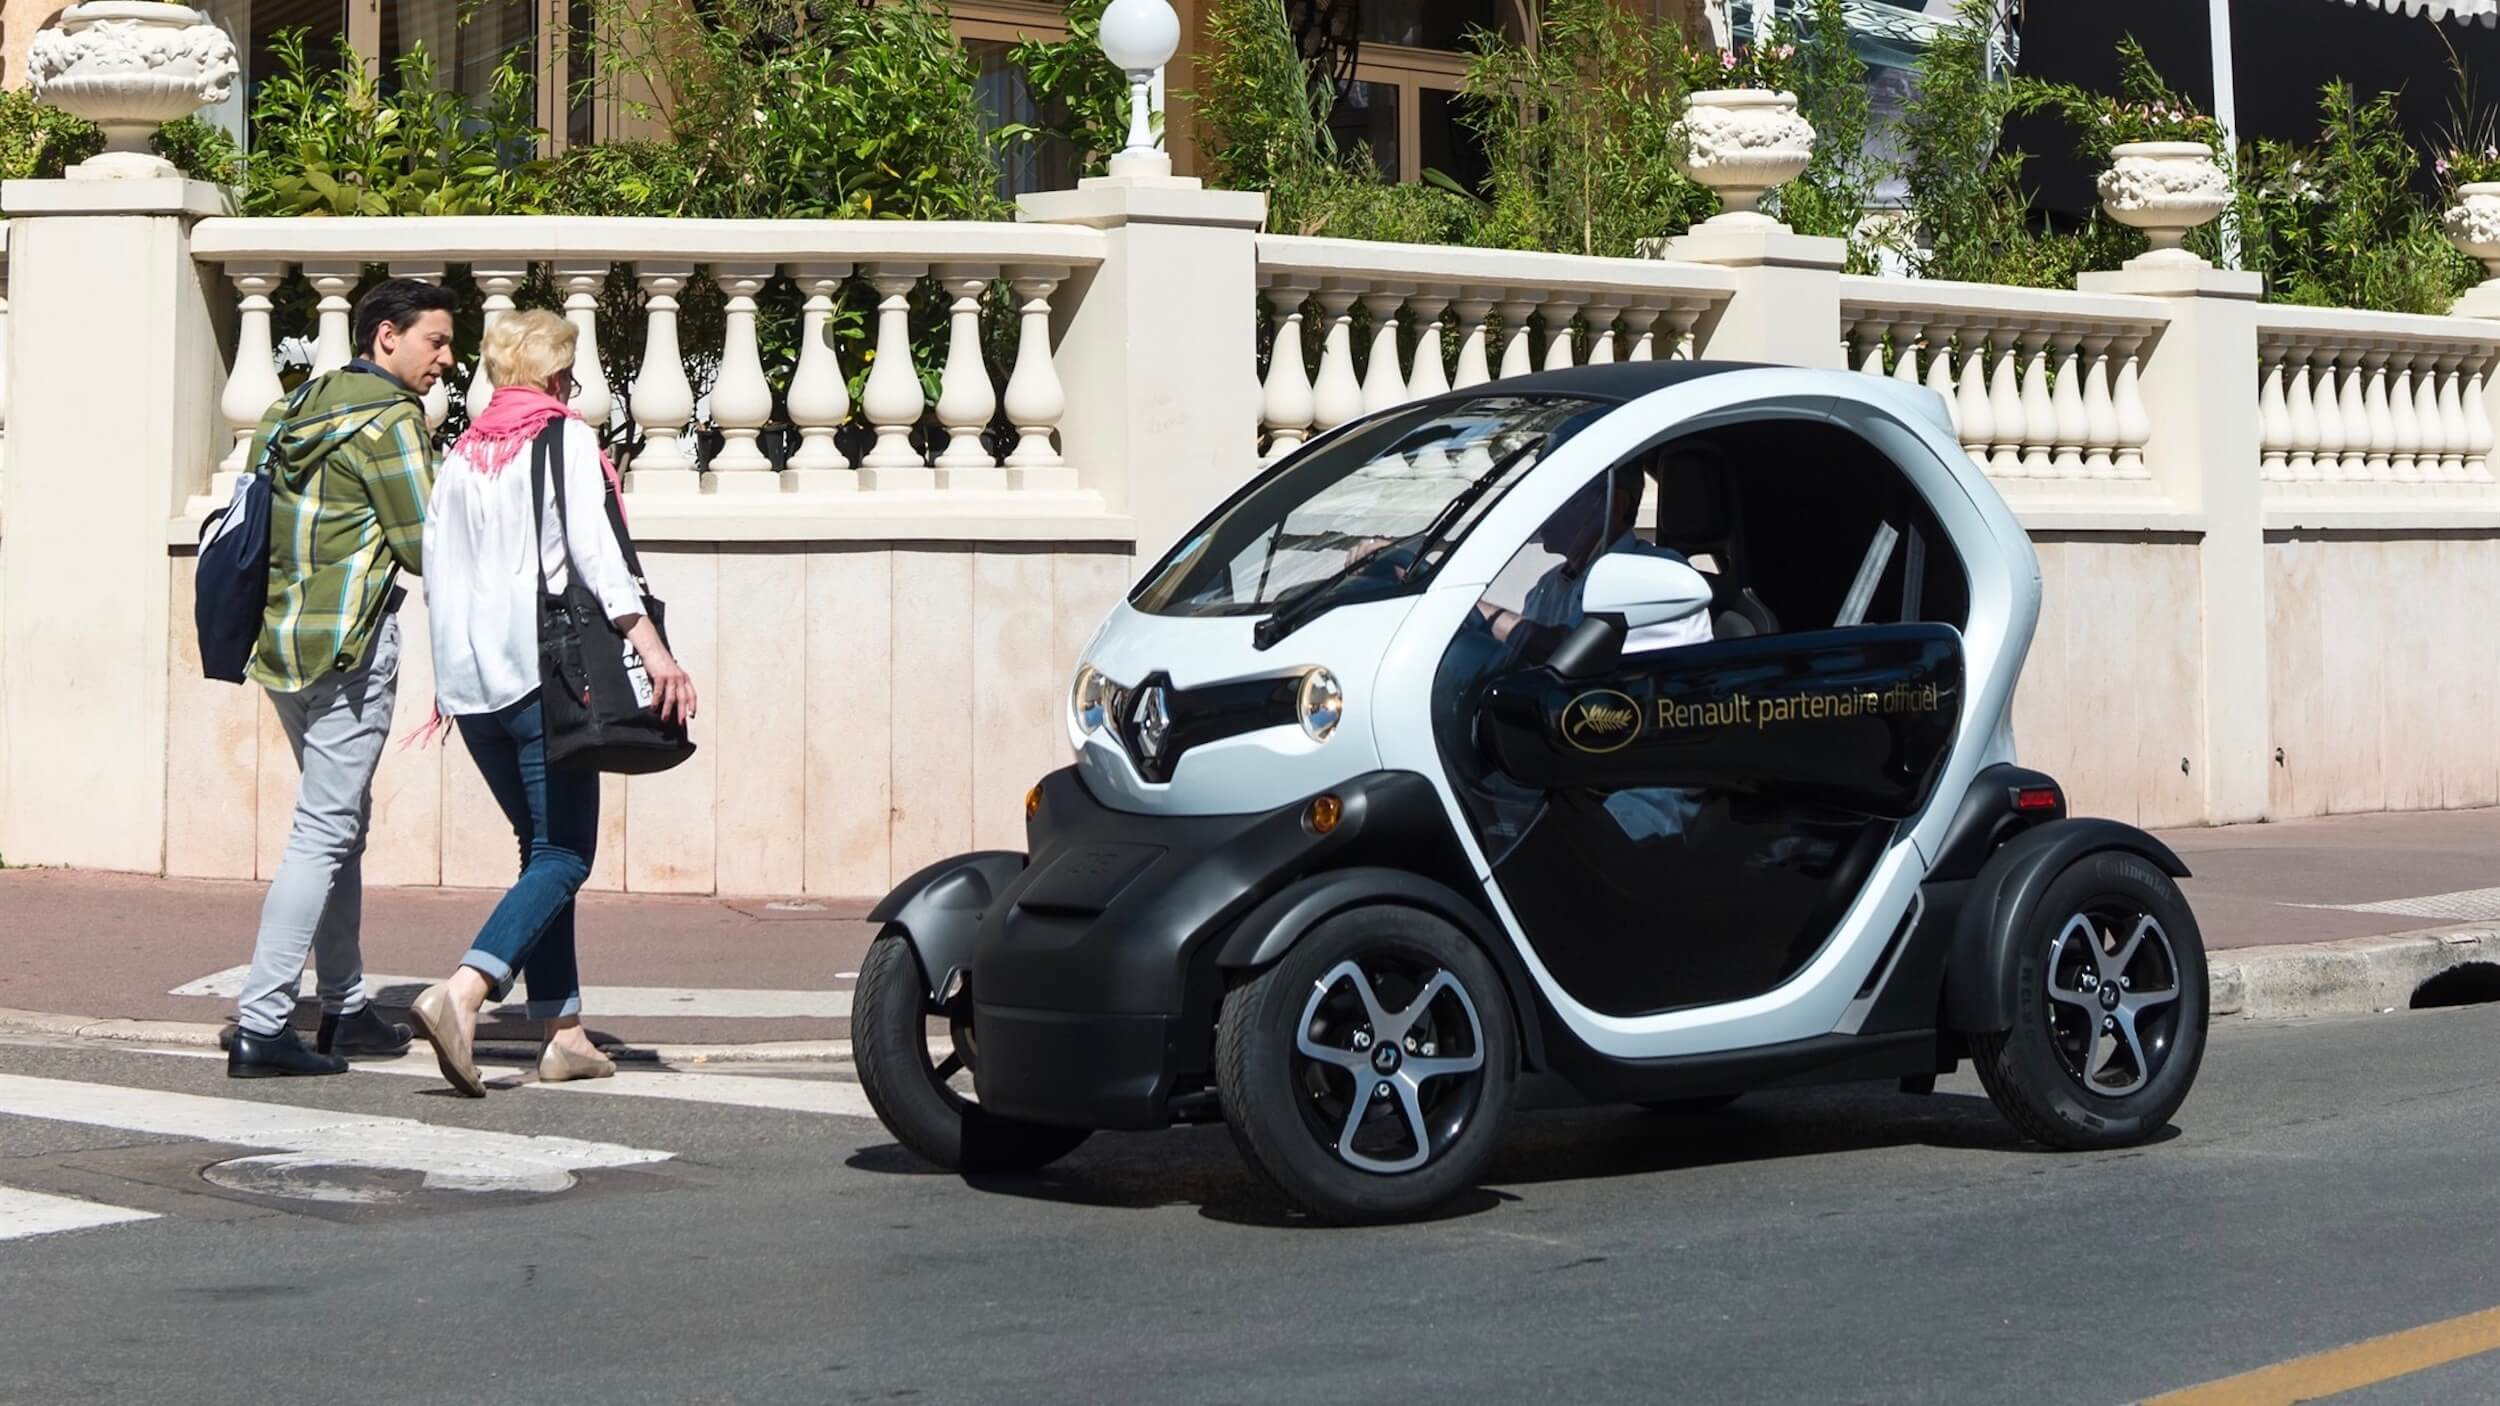 Renault Twizy in city